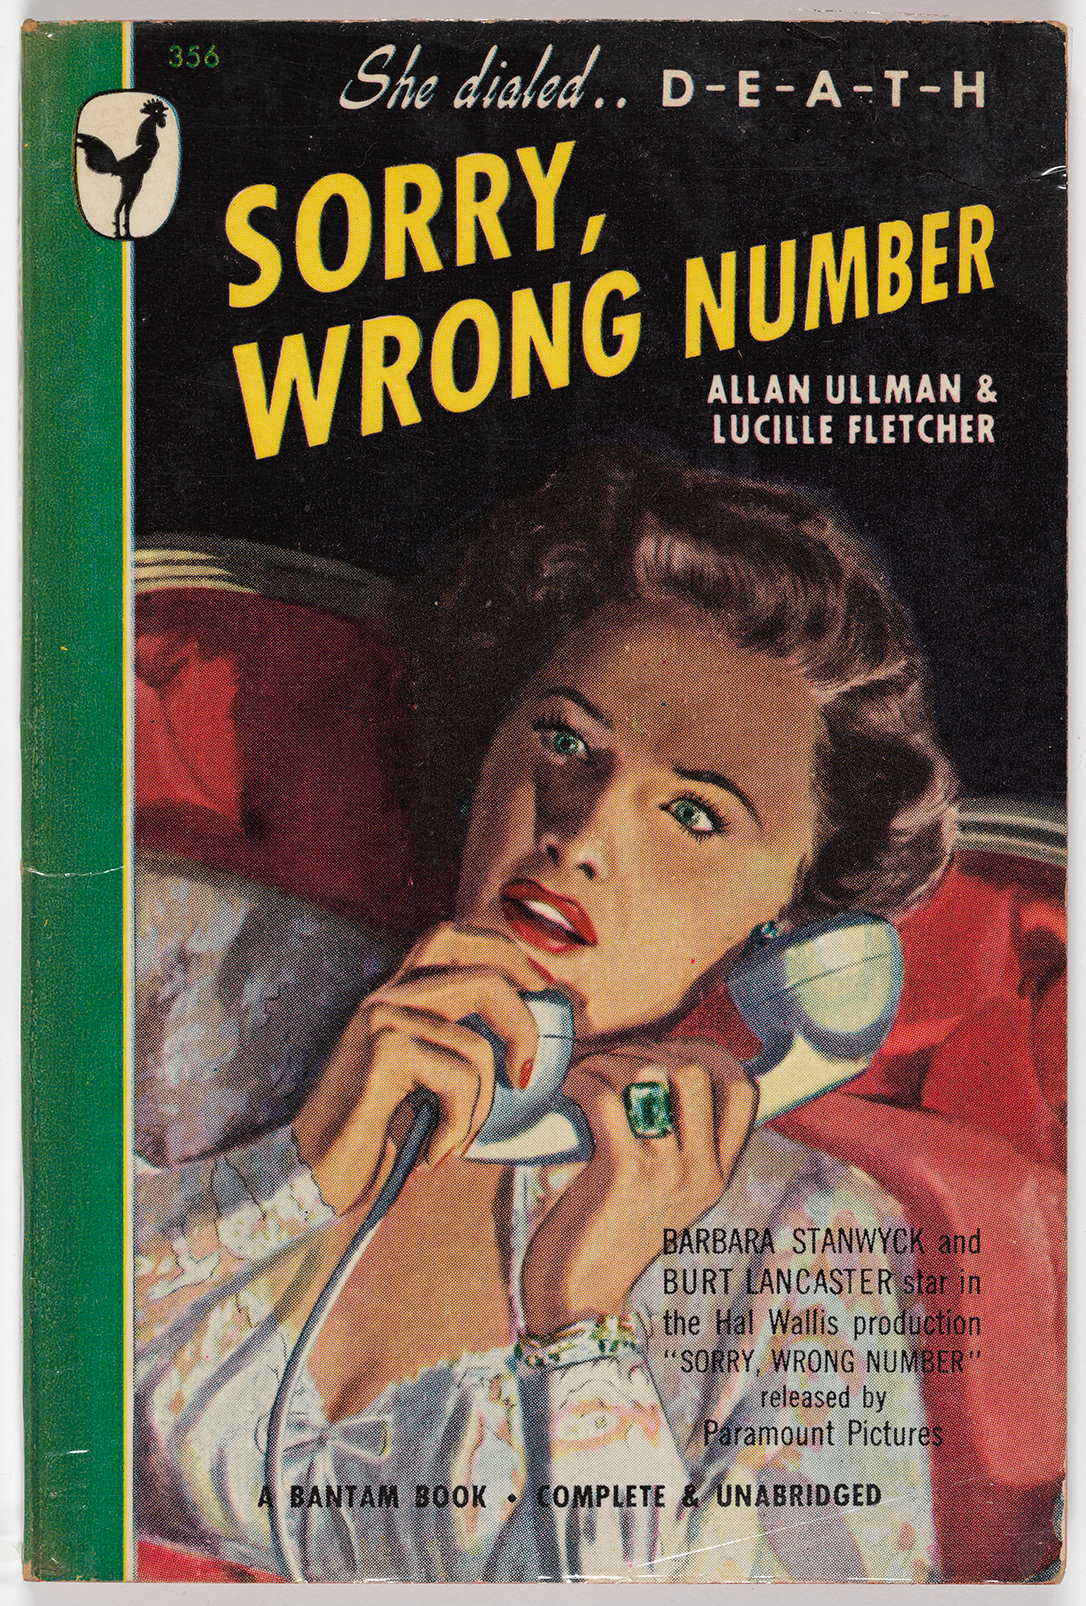 "The cover for this novel by Allan Ullman and Lucille Fletcher shows a frightened brunette woman  sitting on a red velvet loveseat and clutching a phone to her ear. It is based on the Paramount Pictures film starring ""Barbara Stanwyck and Burt Lancaster."" The tagline, ""She dialed .. D-E-A-T-H"" appears at the top of the page, along with the logo for Bantam Books (a black rooster on a white backdrop)."